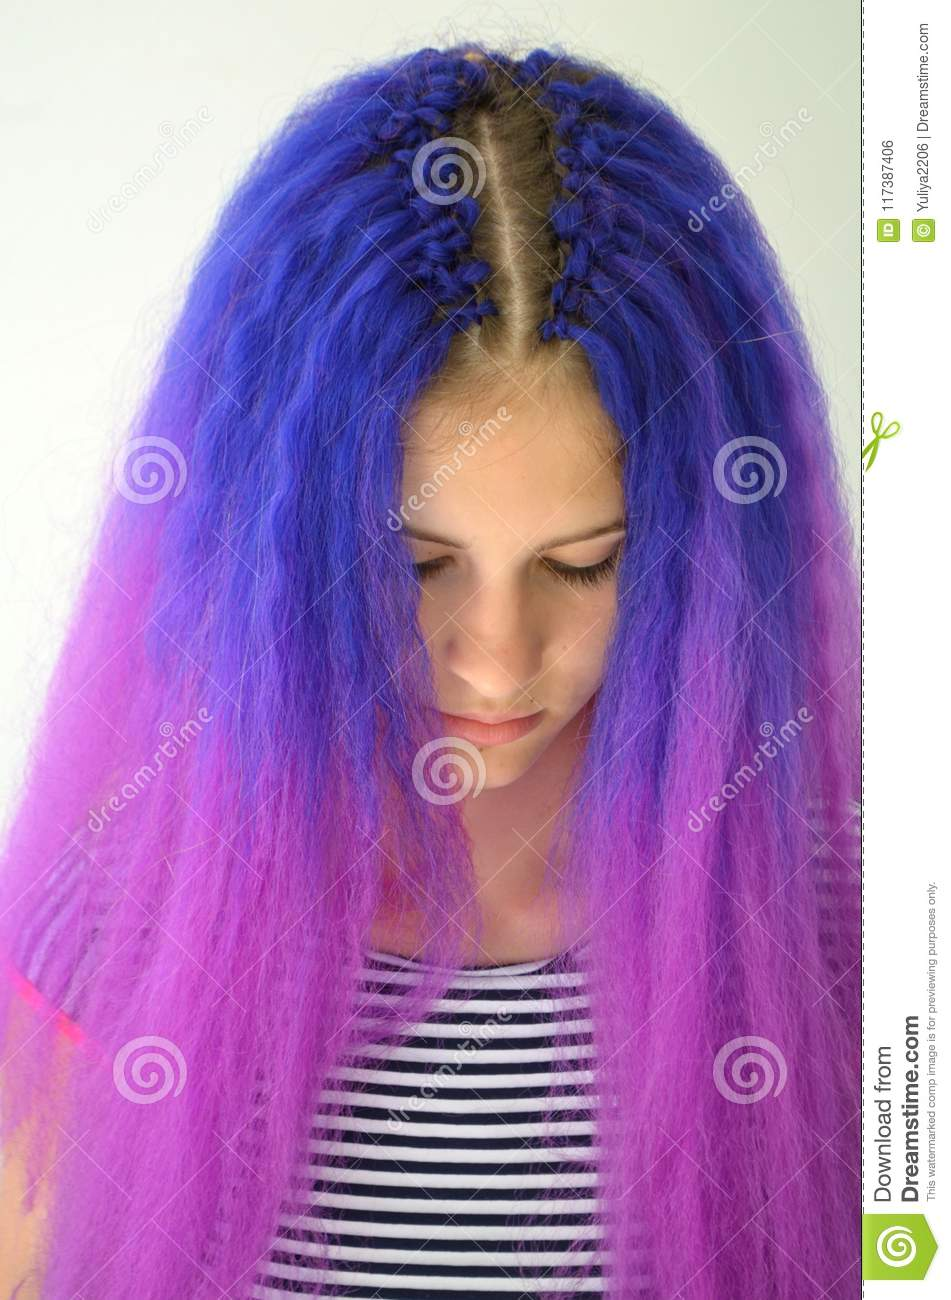 Girl With Blue Purple Hair Technique Of Hair Extensions Kanekalon